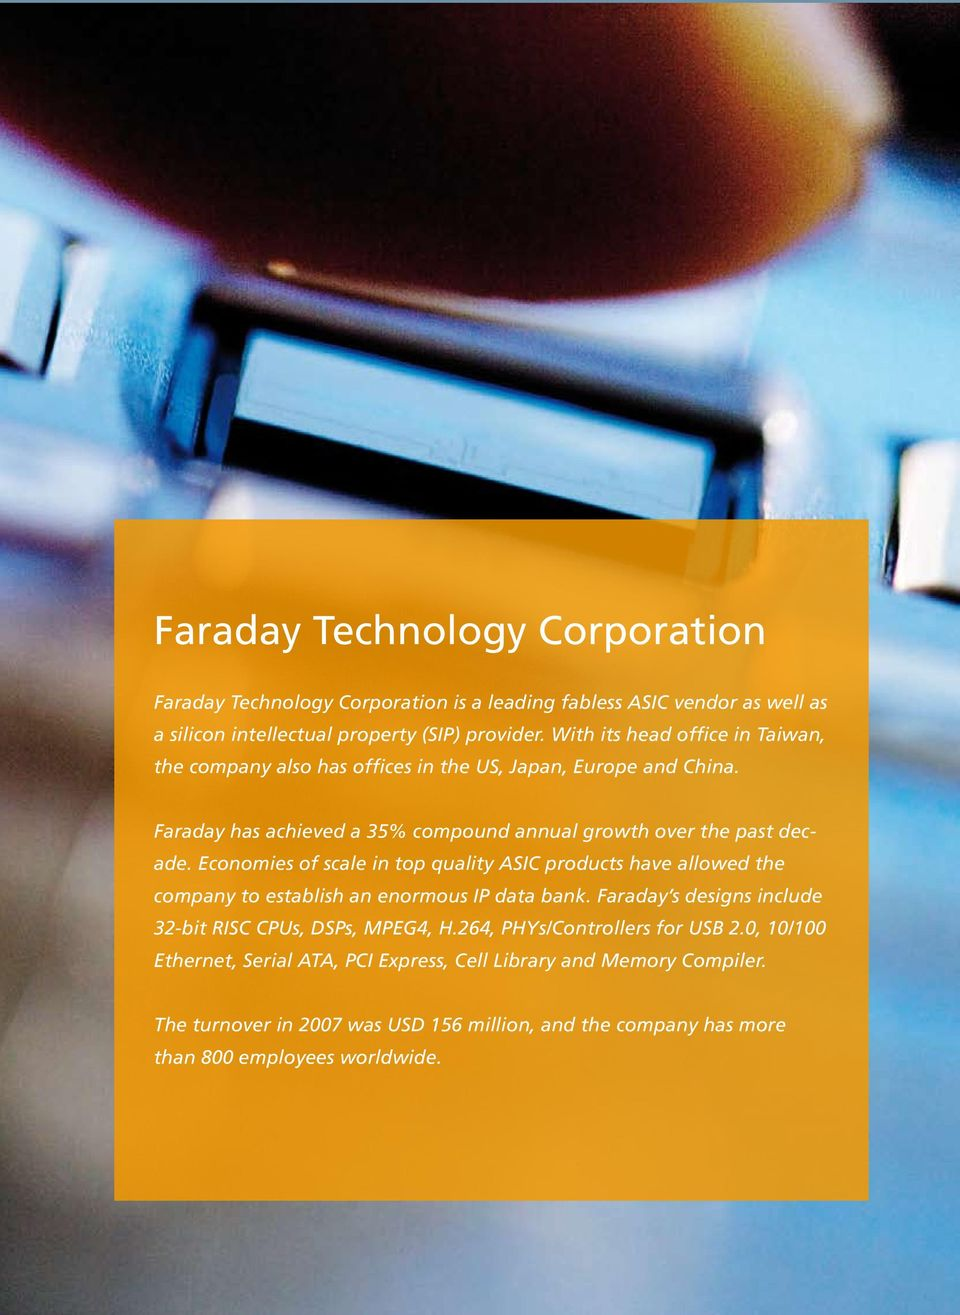 Economies of scale in top quality ASIC products have allowed the company to establish an enormous IP data bank. Faraday s designs include 32-bit RISC CPUs, DSPs, MPEG4, H.